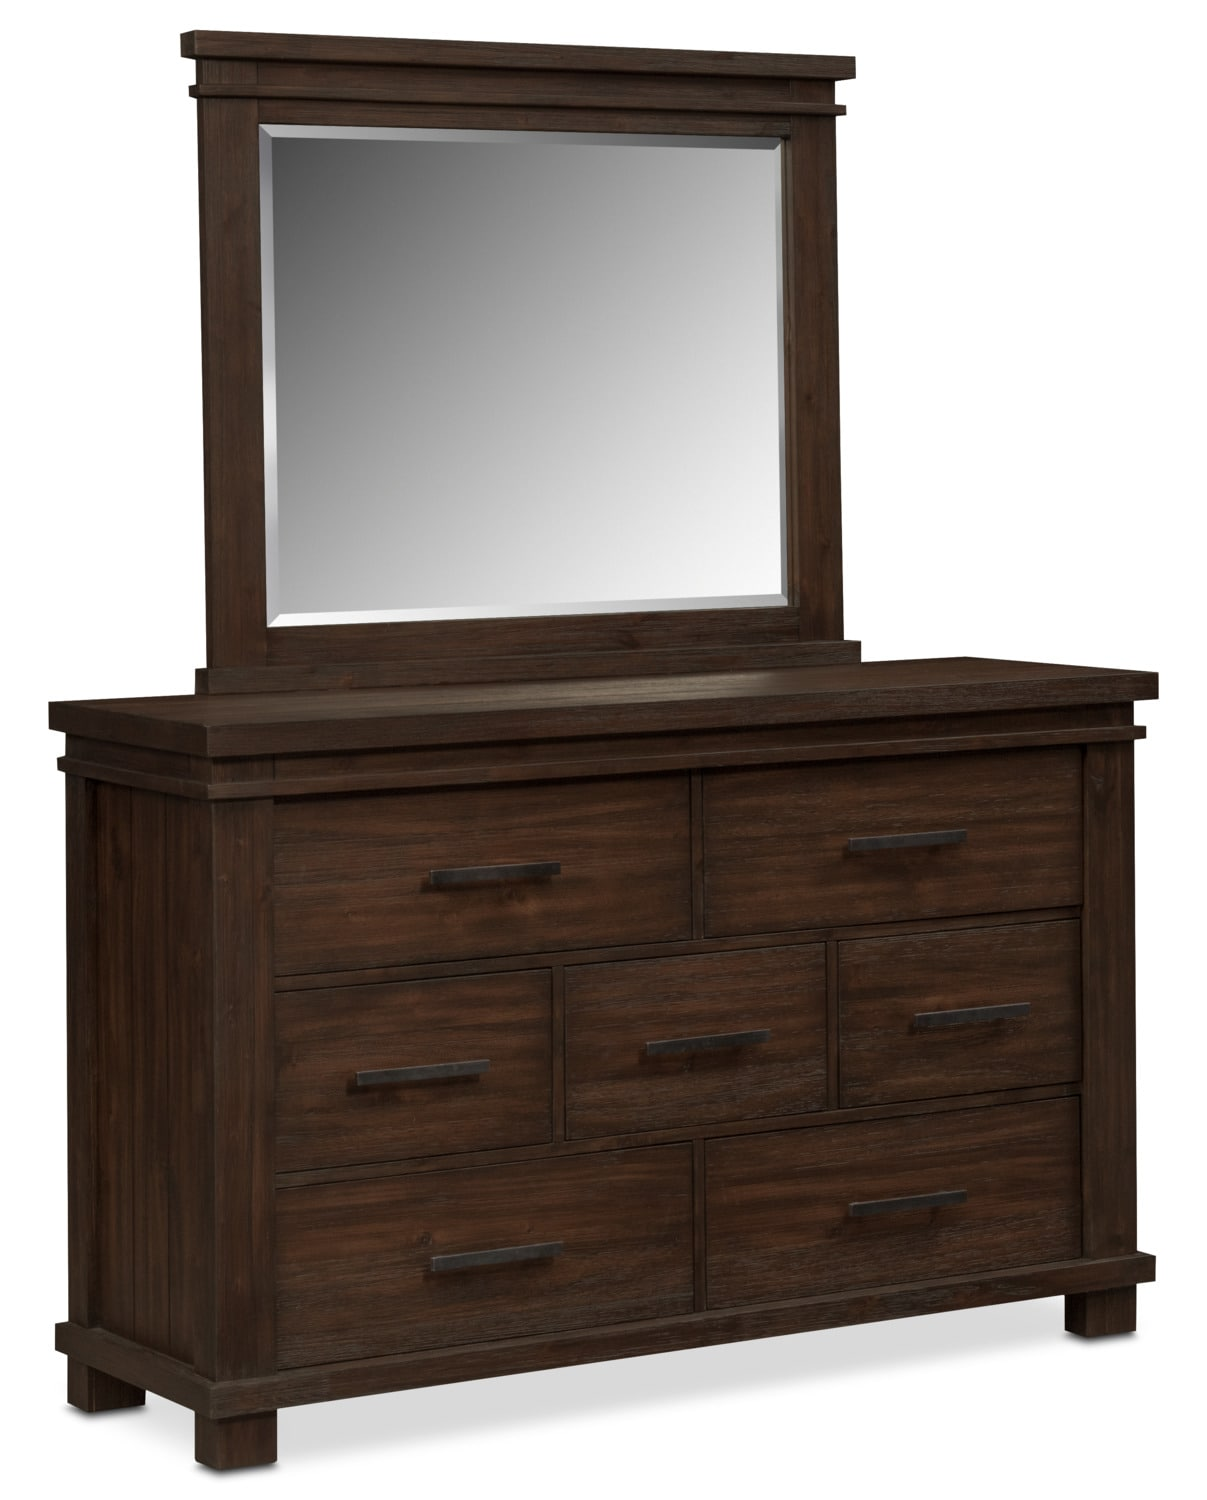 The Tribeca Bedroom Collection Tobacco American Signature Furniture